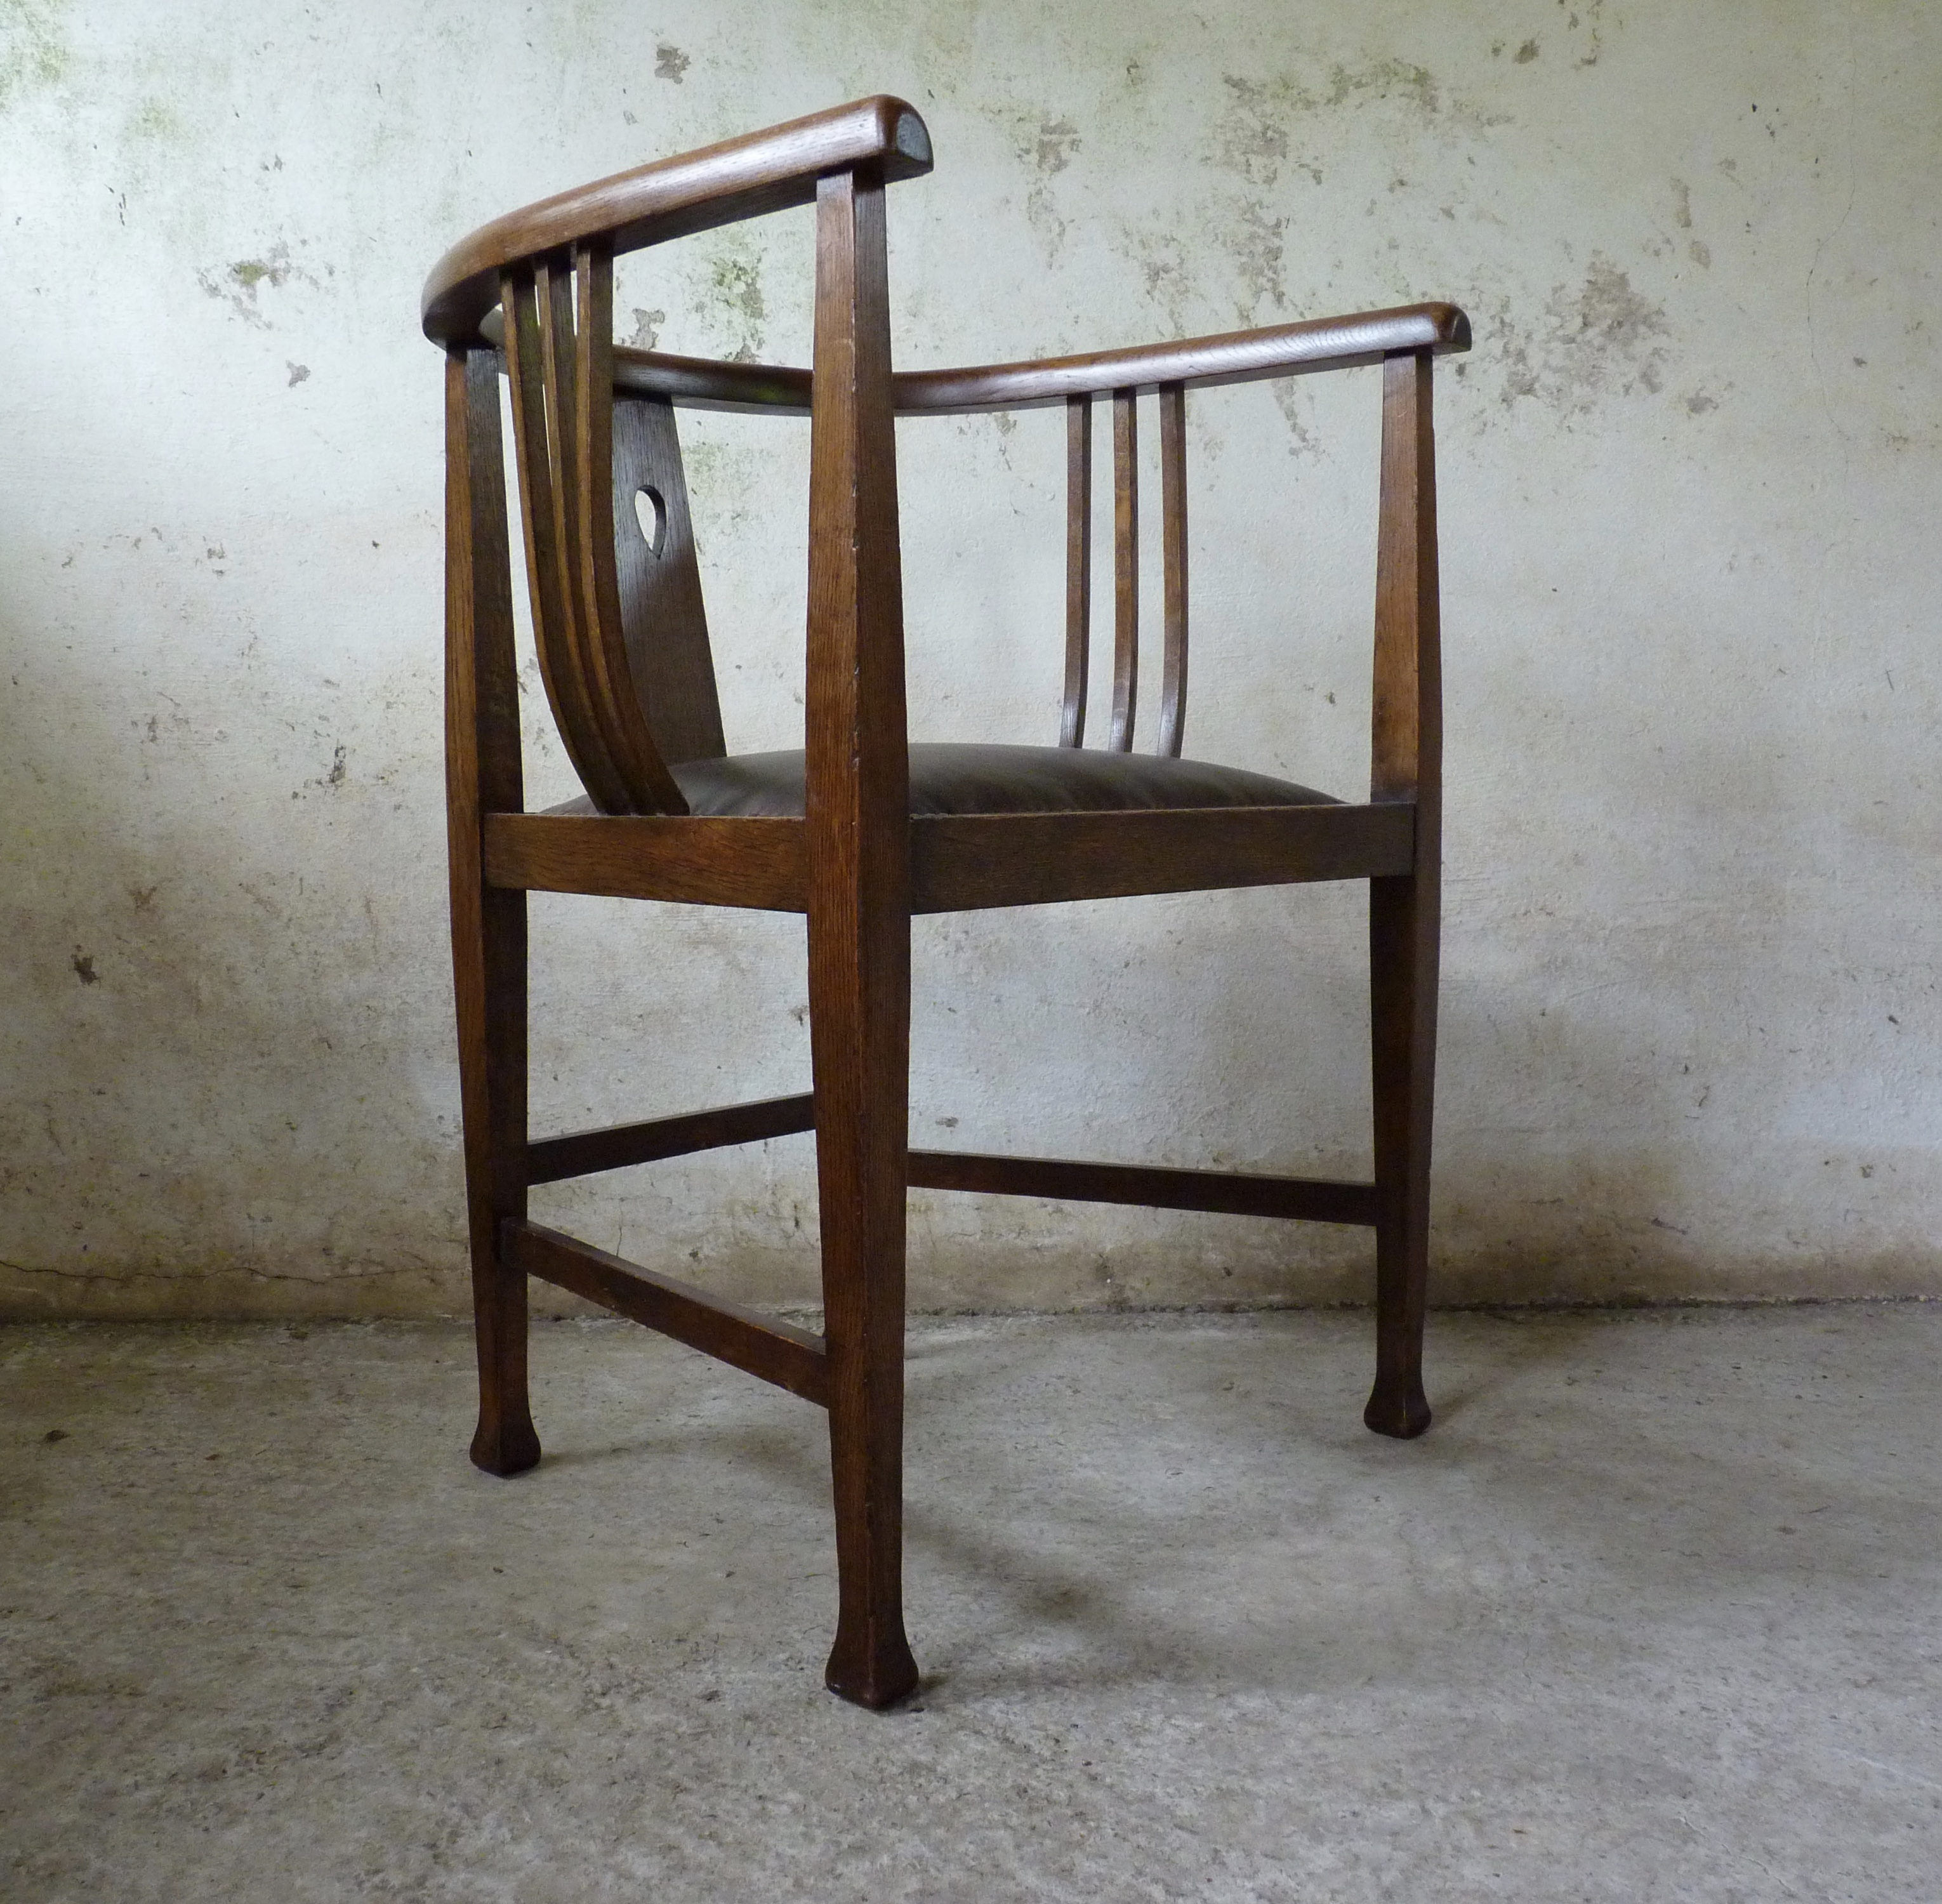 Glasgow school arts and crafts tub chair designed by E A Taylor